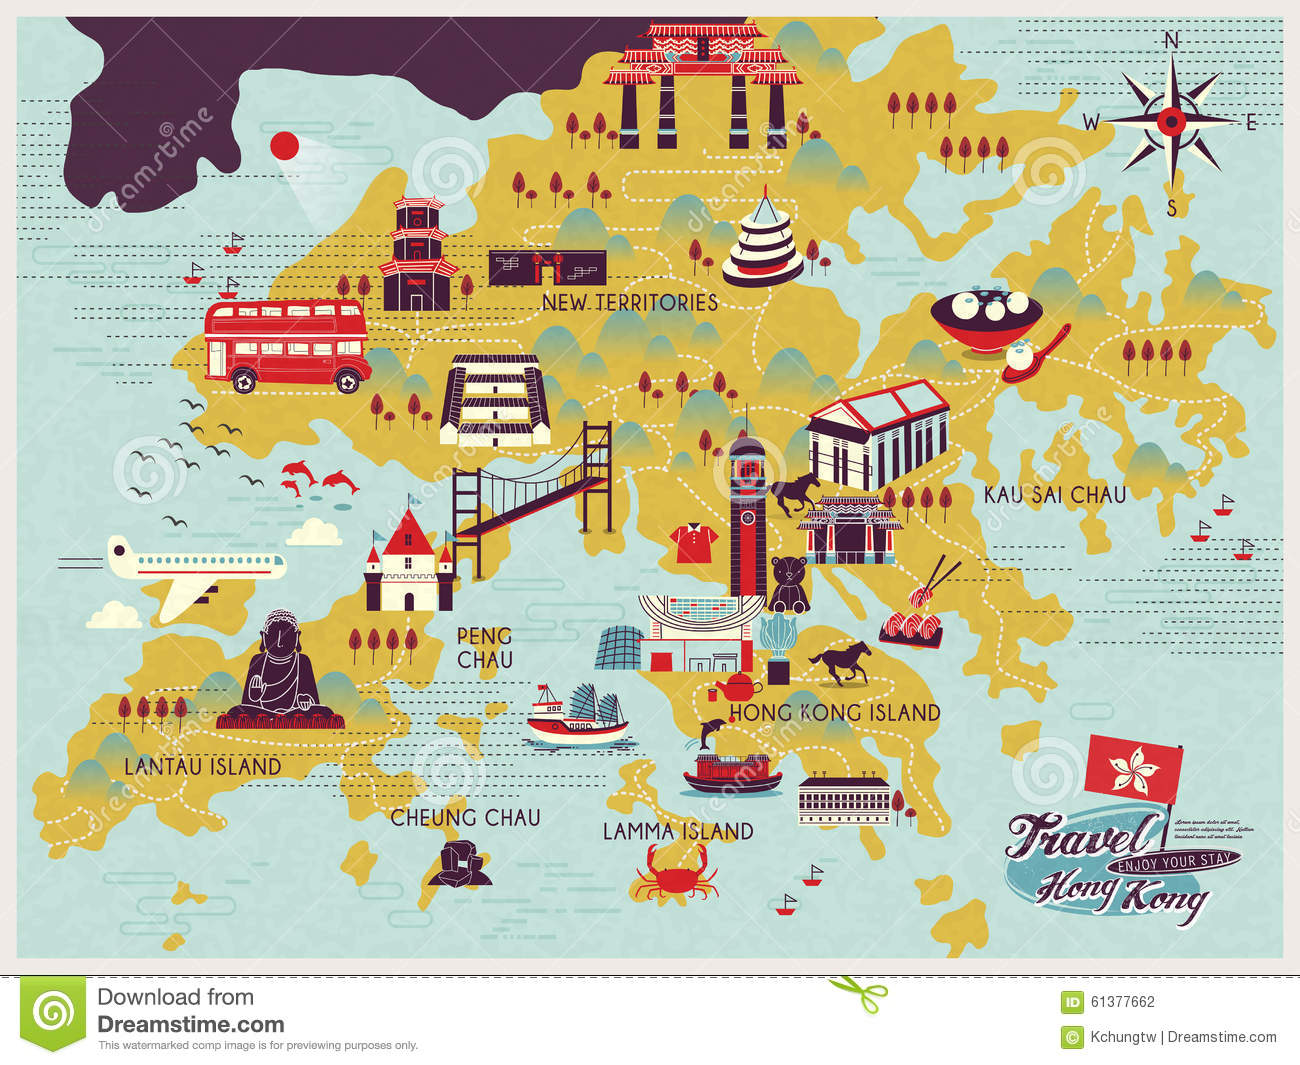 Hong Kong Travel Map Vector Image 61377641 – Hong Kong Tourist Attractions Map